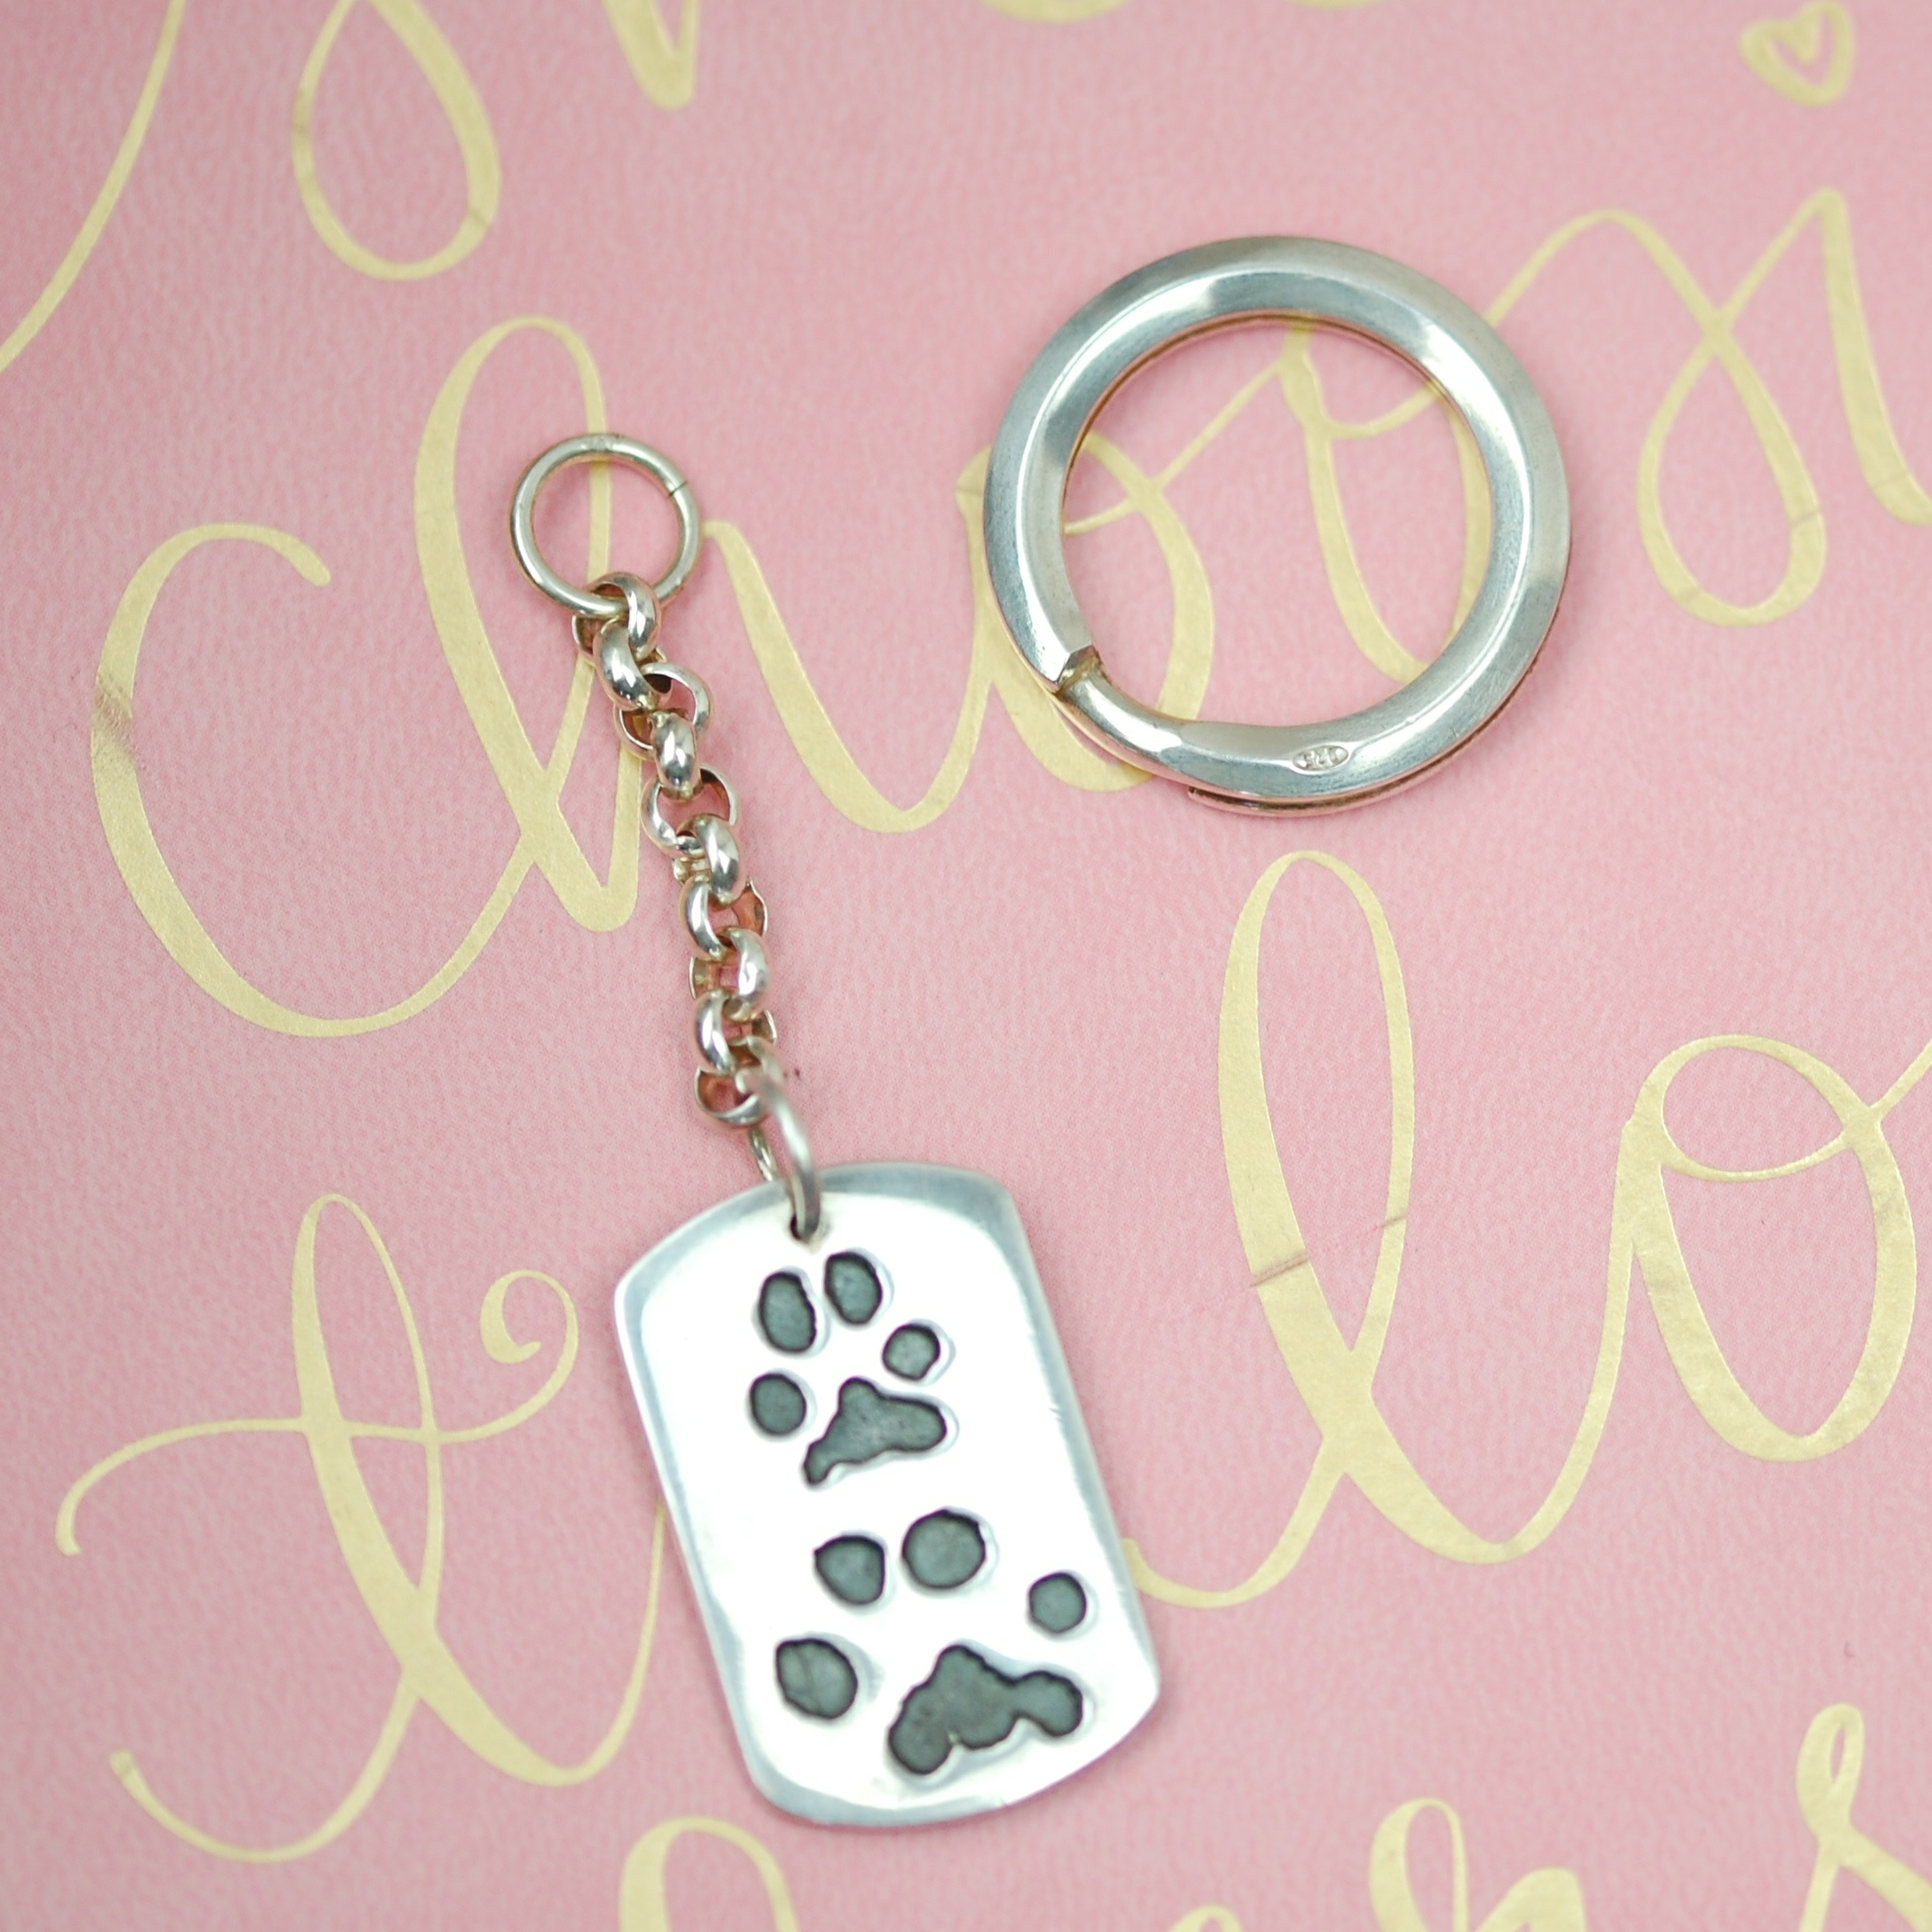 Large sterling silver dog tag keyring with your pet's unique paw prints. Dog dad gifts.